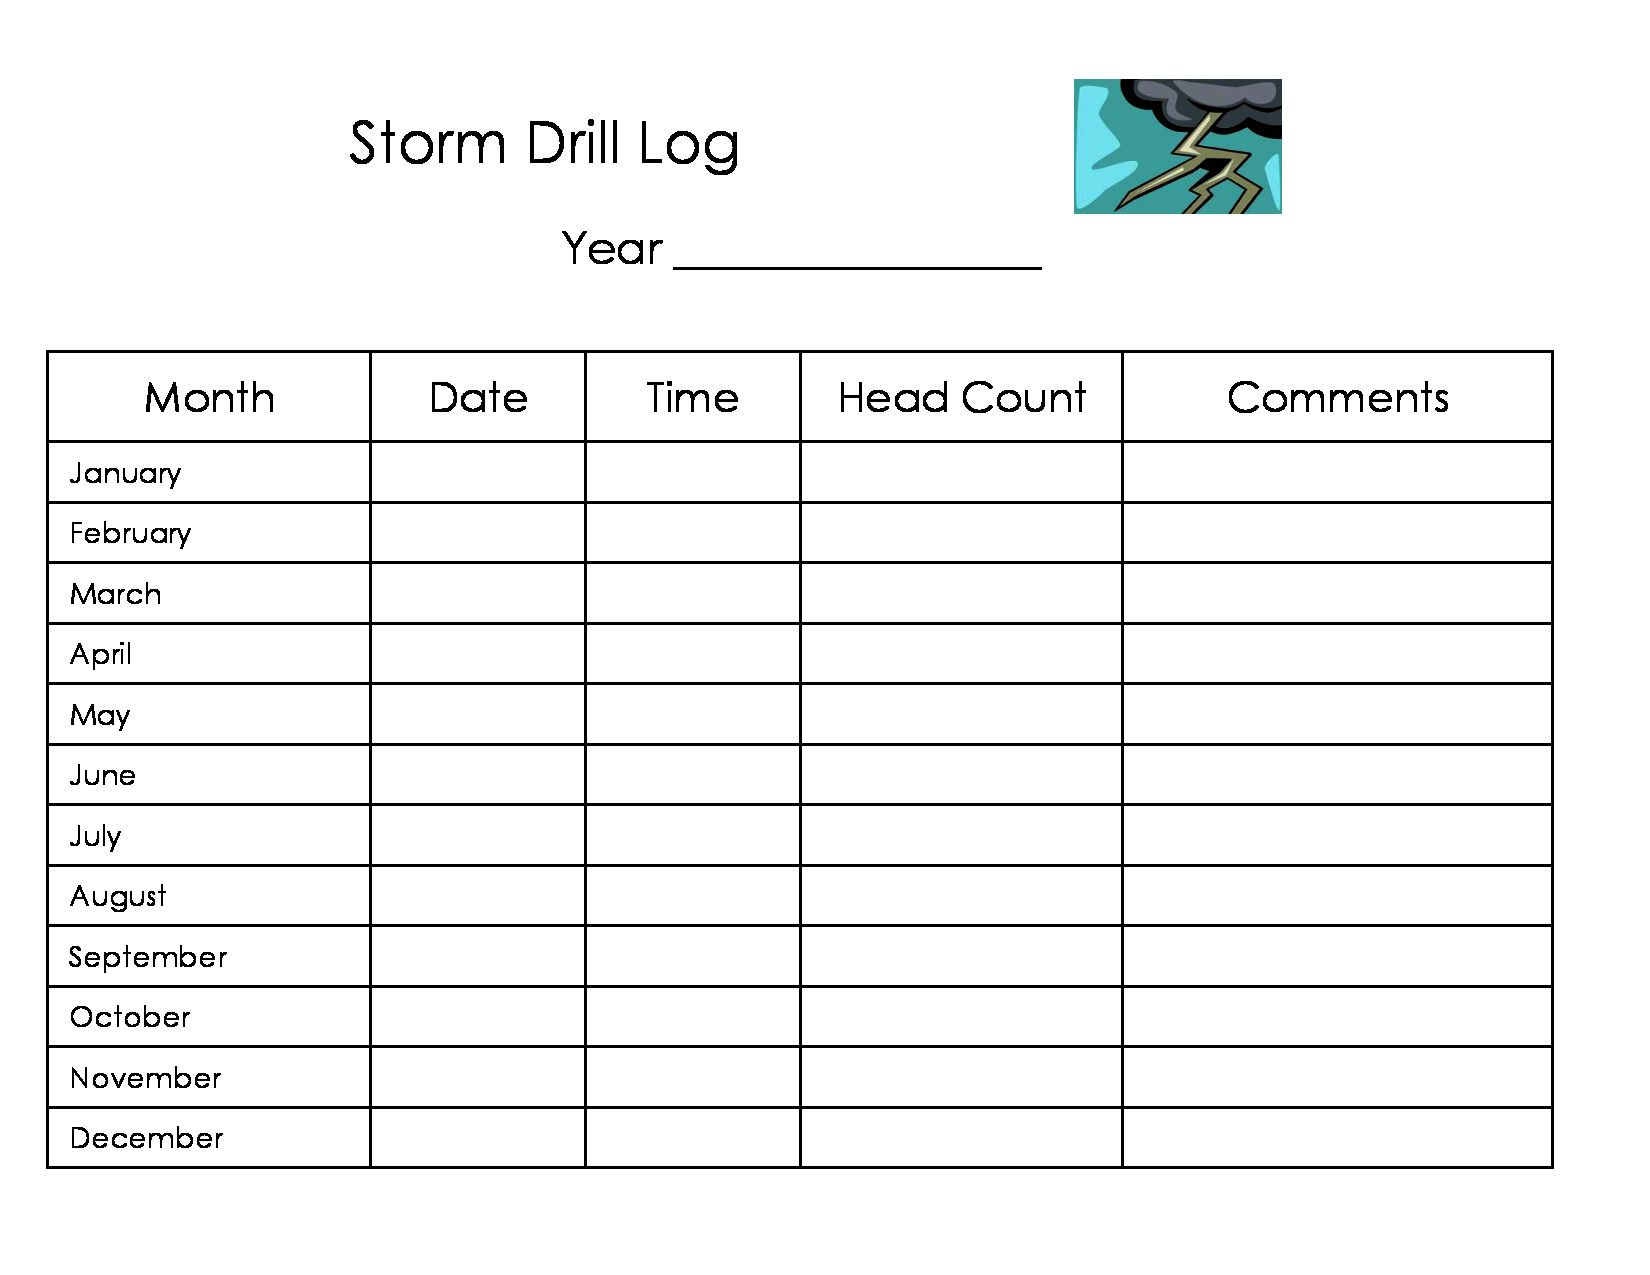 Free Printable Daycare Storm Drill Log Form Reallly